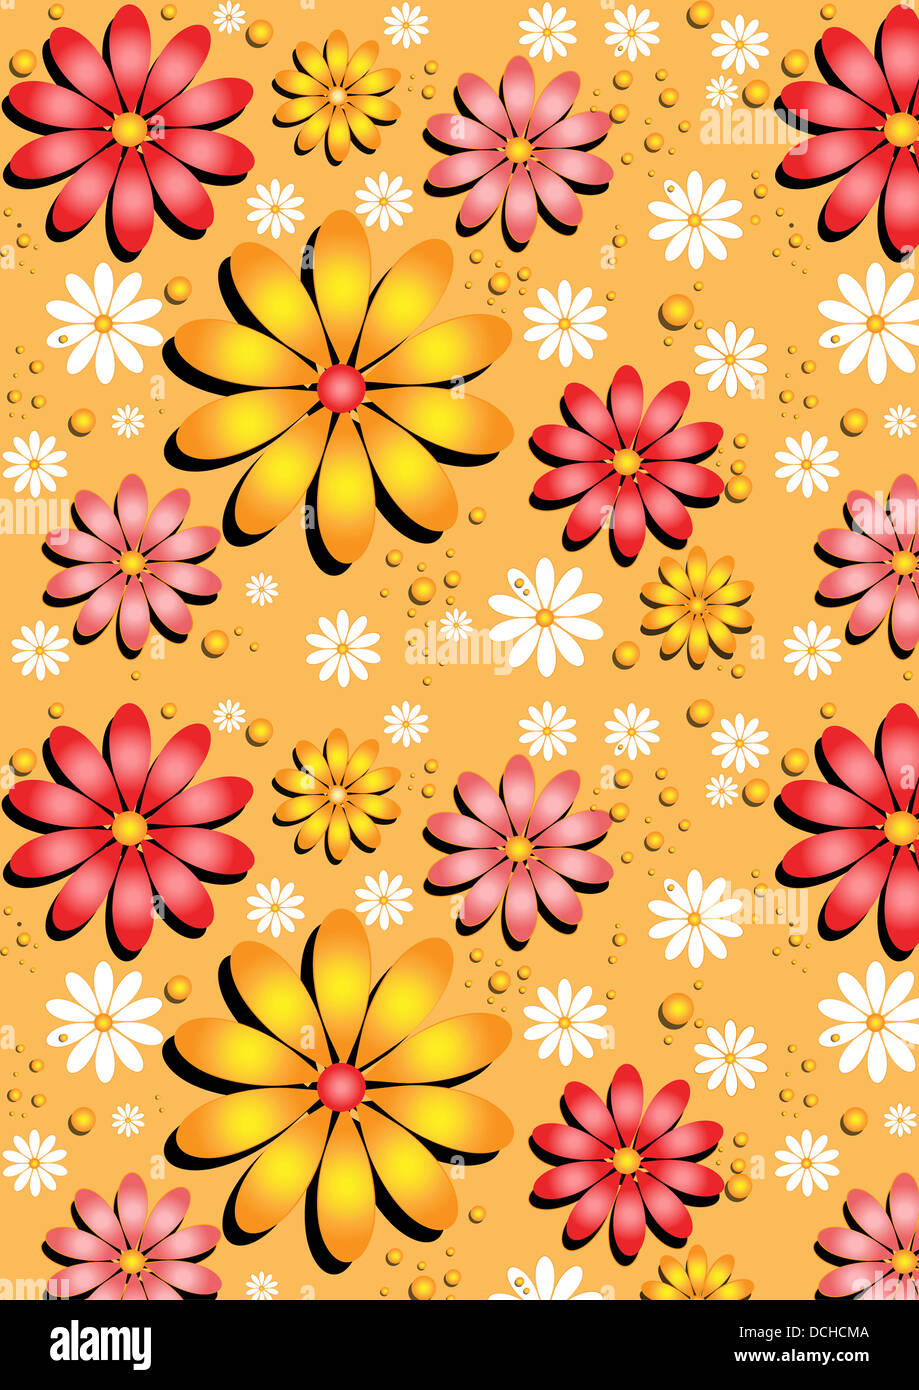 Wallpaper Flowers Red Pink Yellow High Resolution Stock Photography And Images Alamy